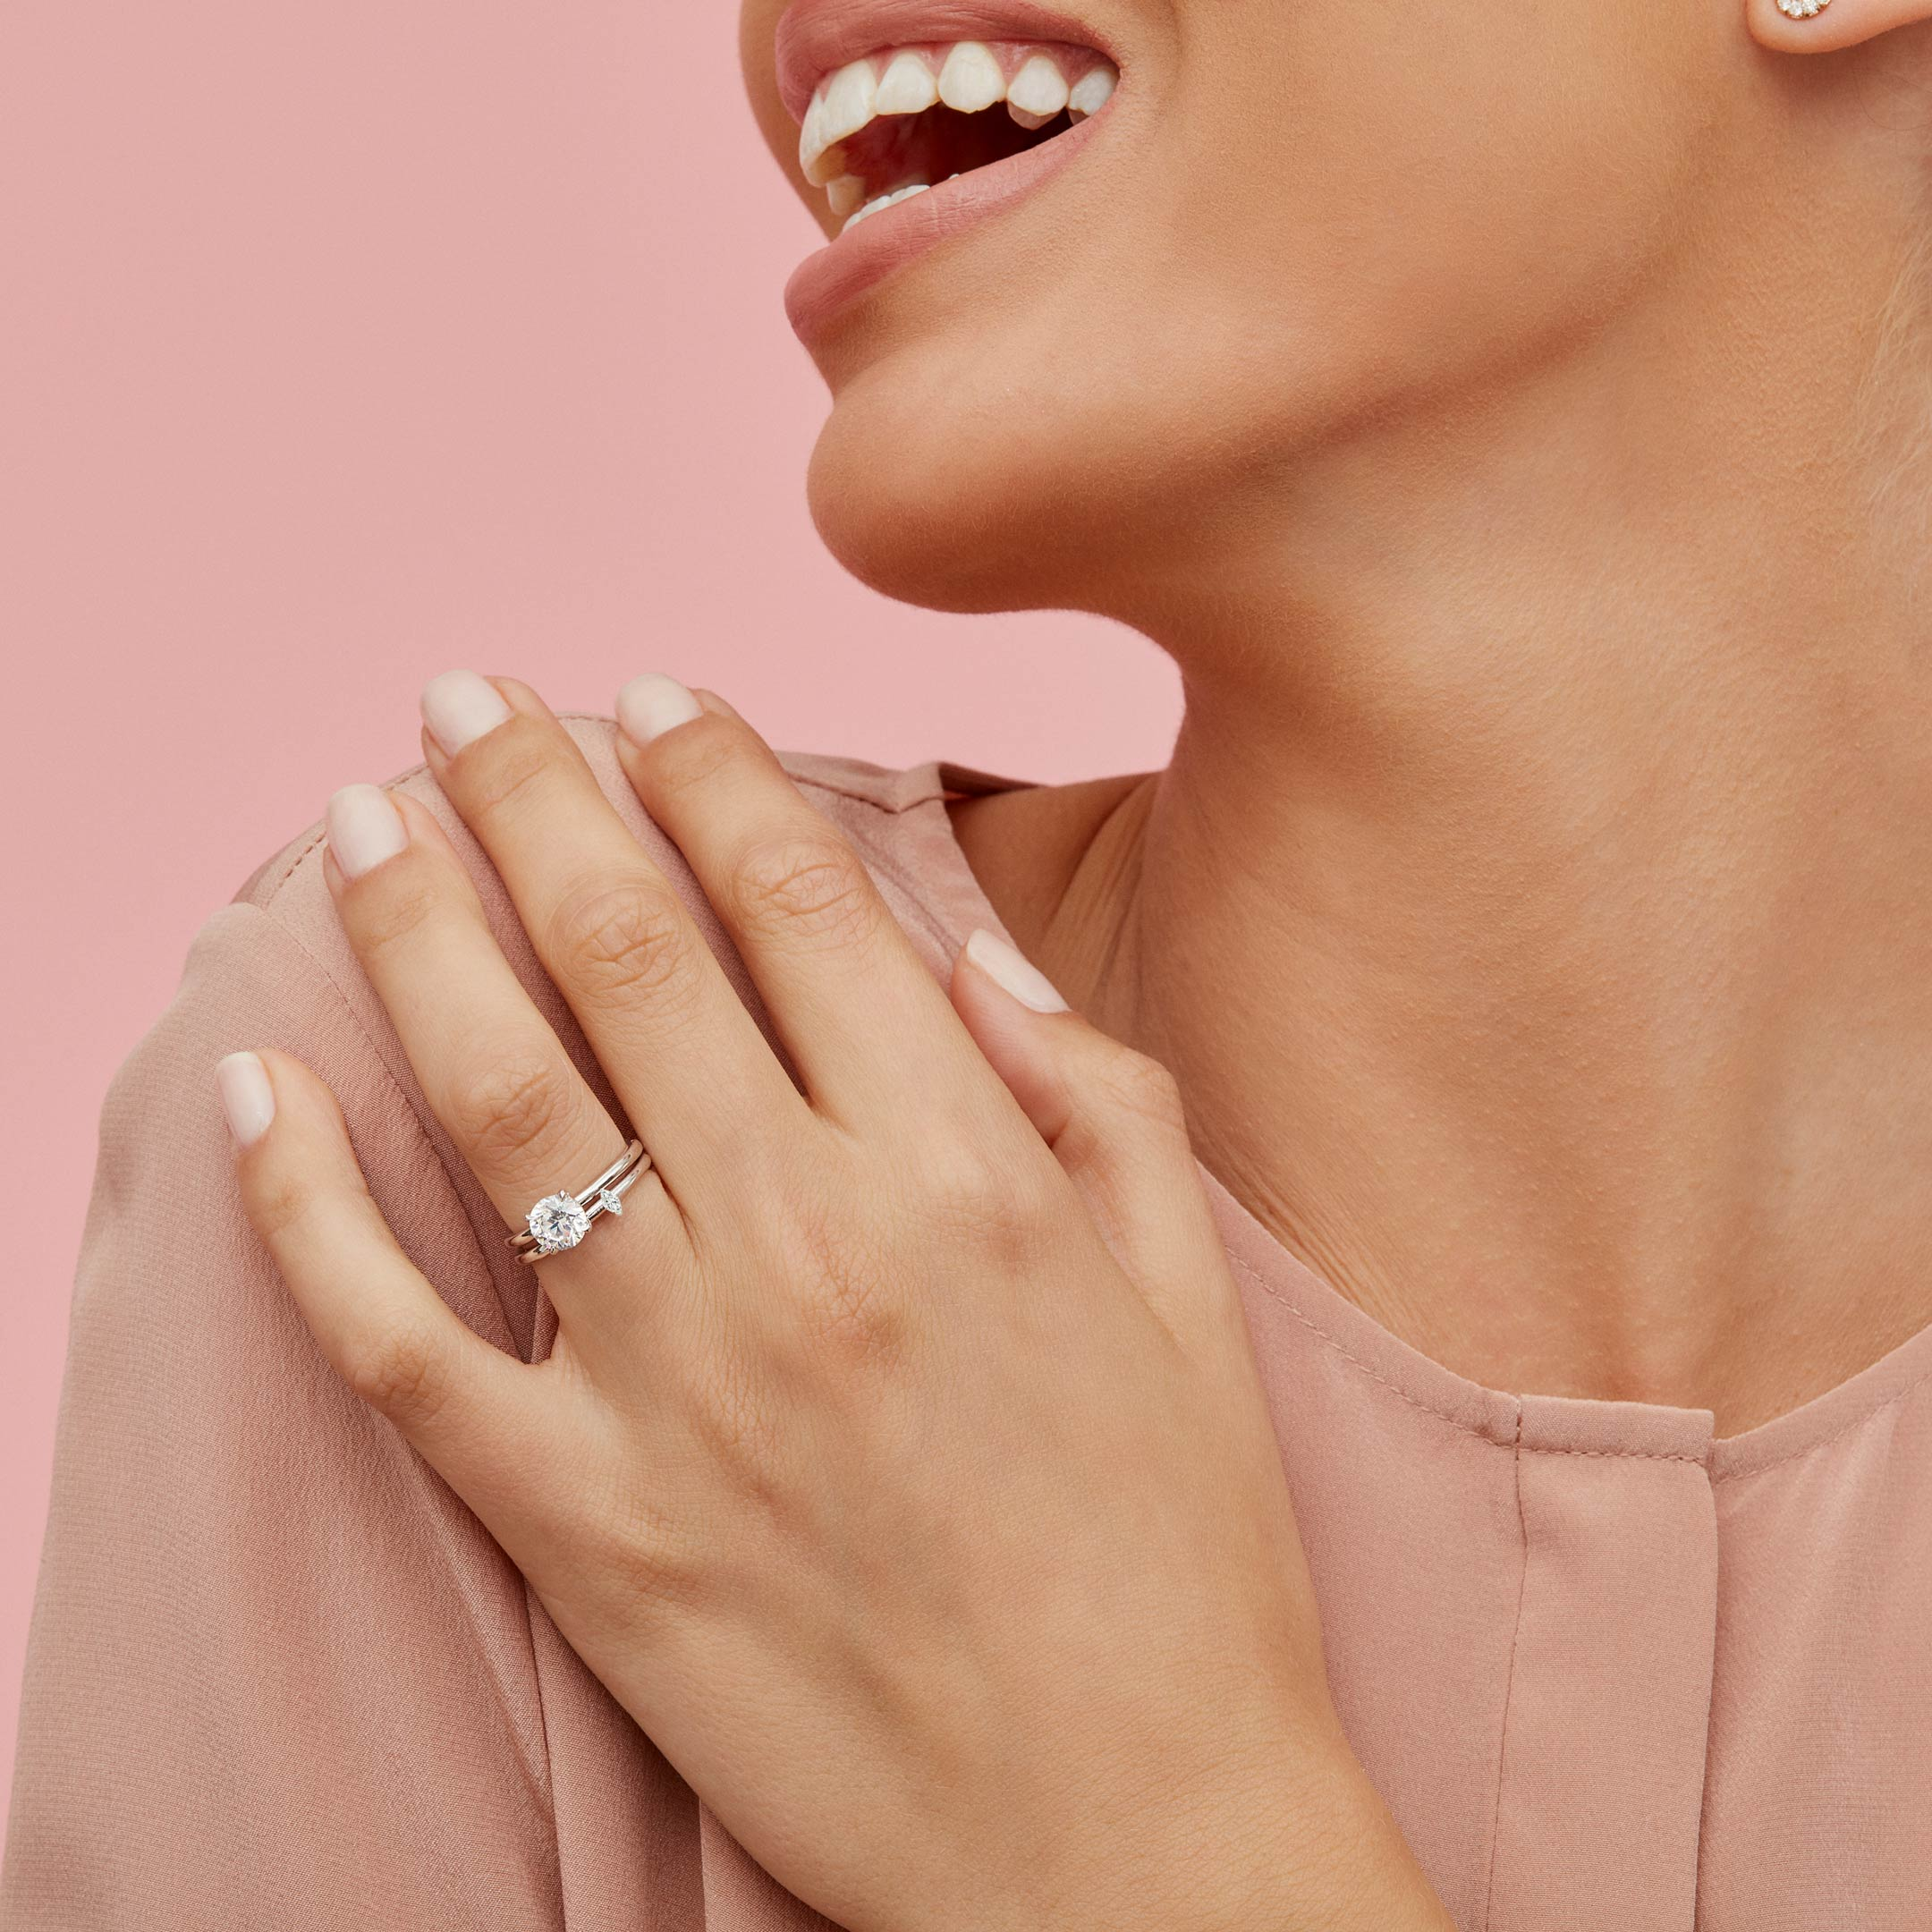 La Petite Marquise Diamond Wedding Band in Platinum Hand against Model Lifestyle by Oui by Jean Dousset